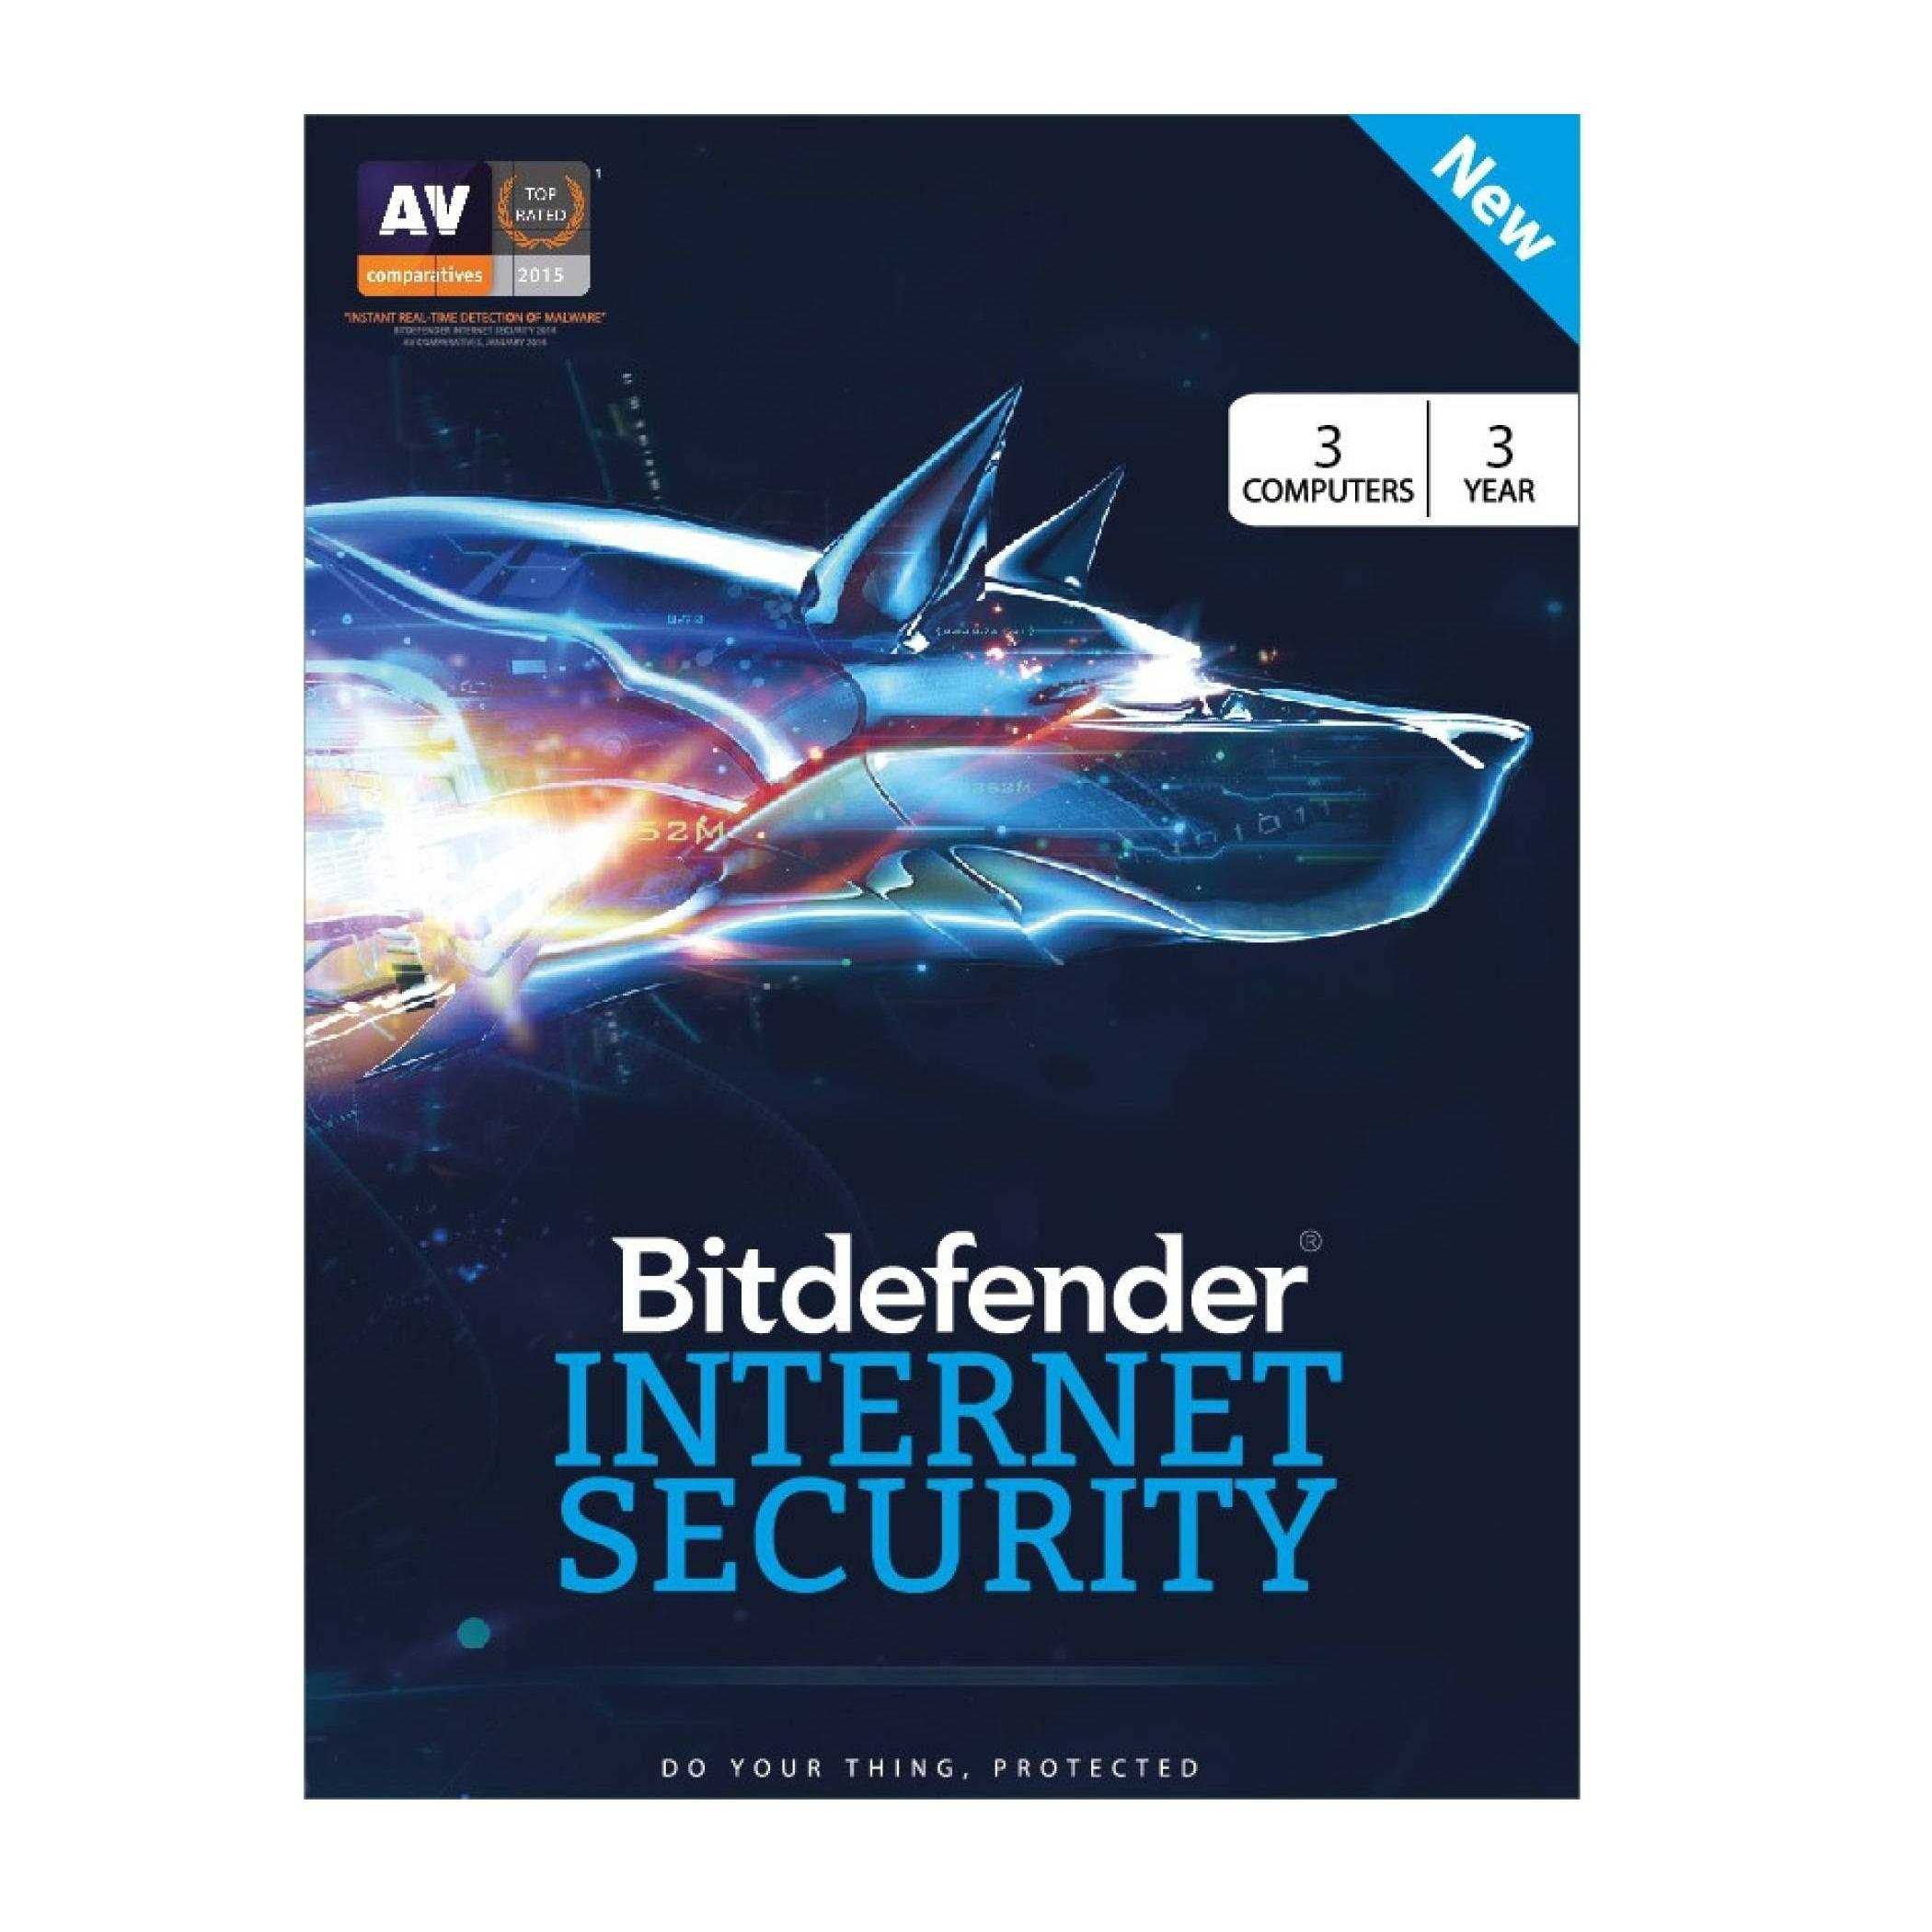 bitdefender internet security 2017 3 pc 3 years nonesira s blog. Black Bedroom Furniture Sets. Home Design Ideas